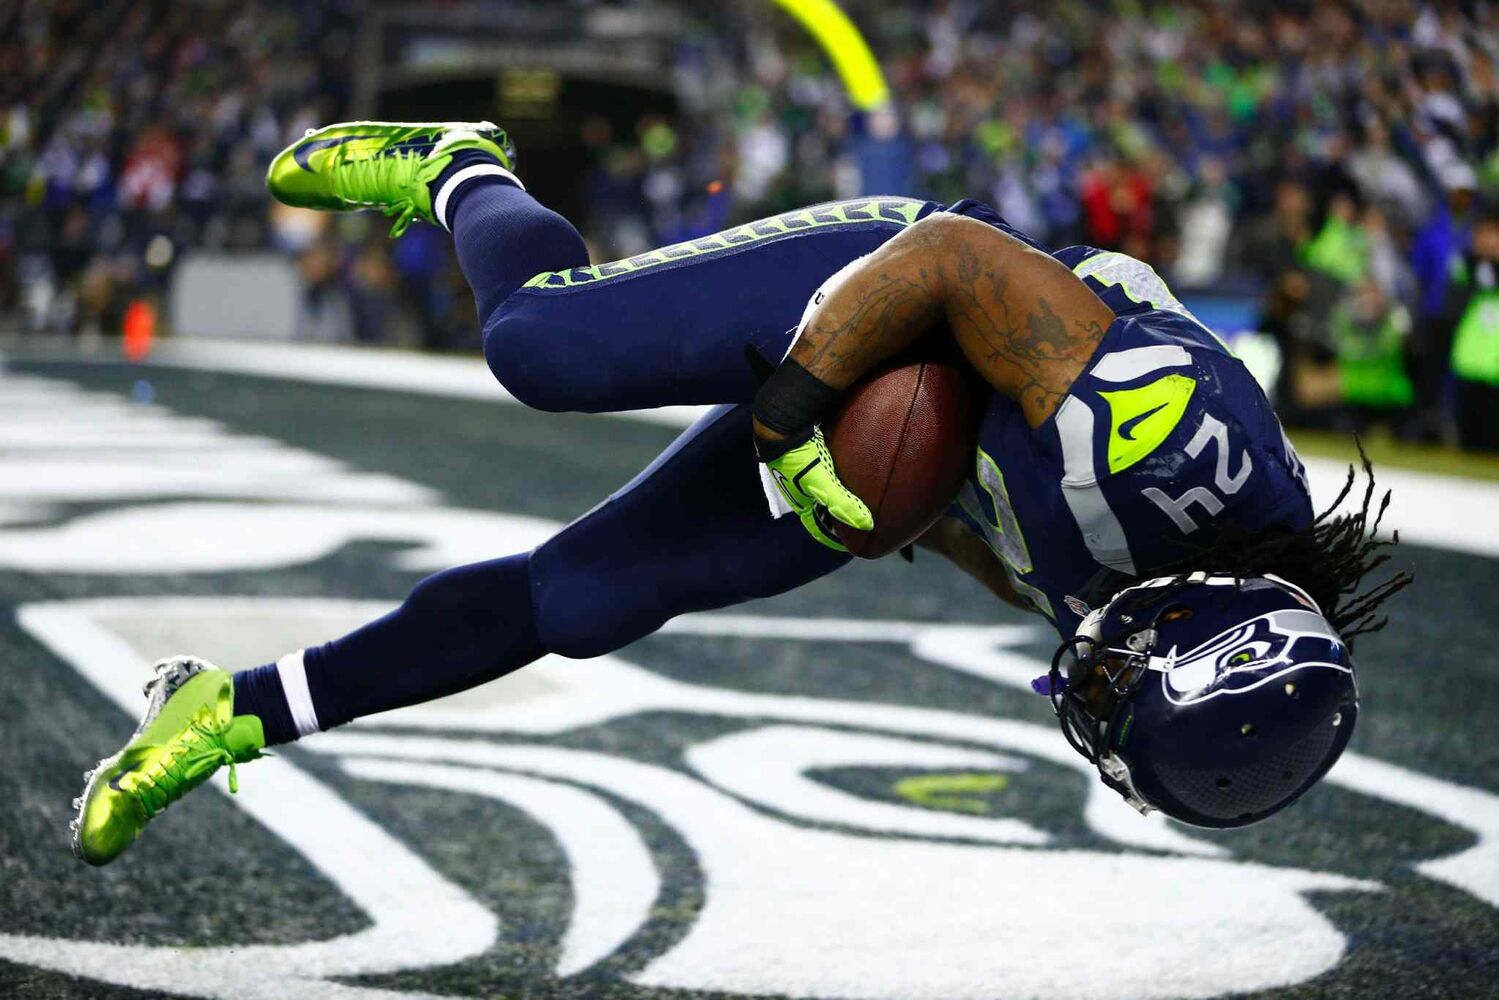 Seahawks running back Marshawn Lynch dives in to the end zone for a touchdown during the second half of the NFC championship. (John Lok / Tribune Media MCT)